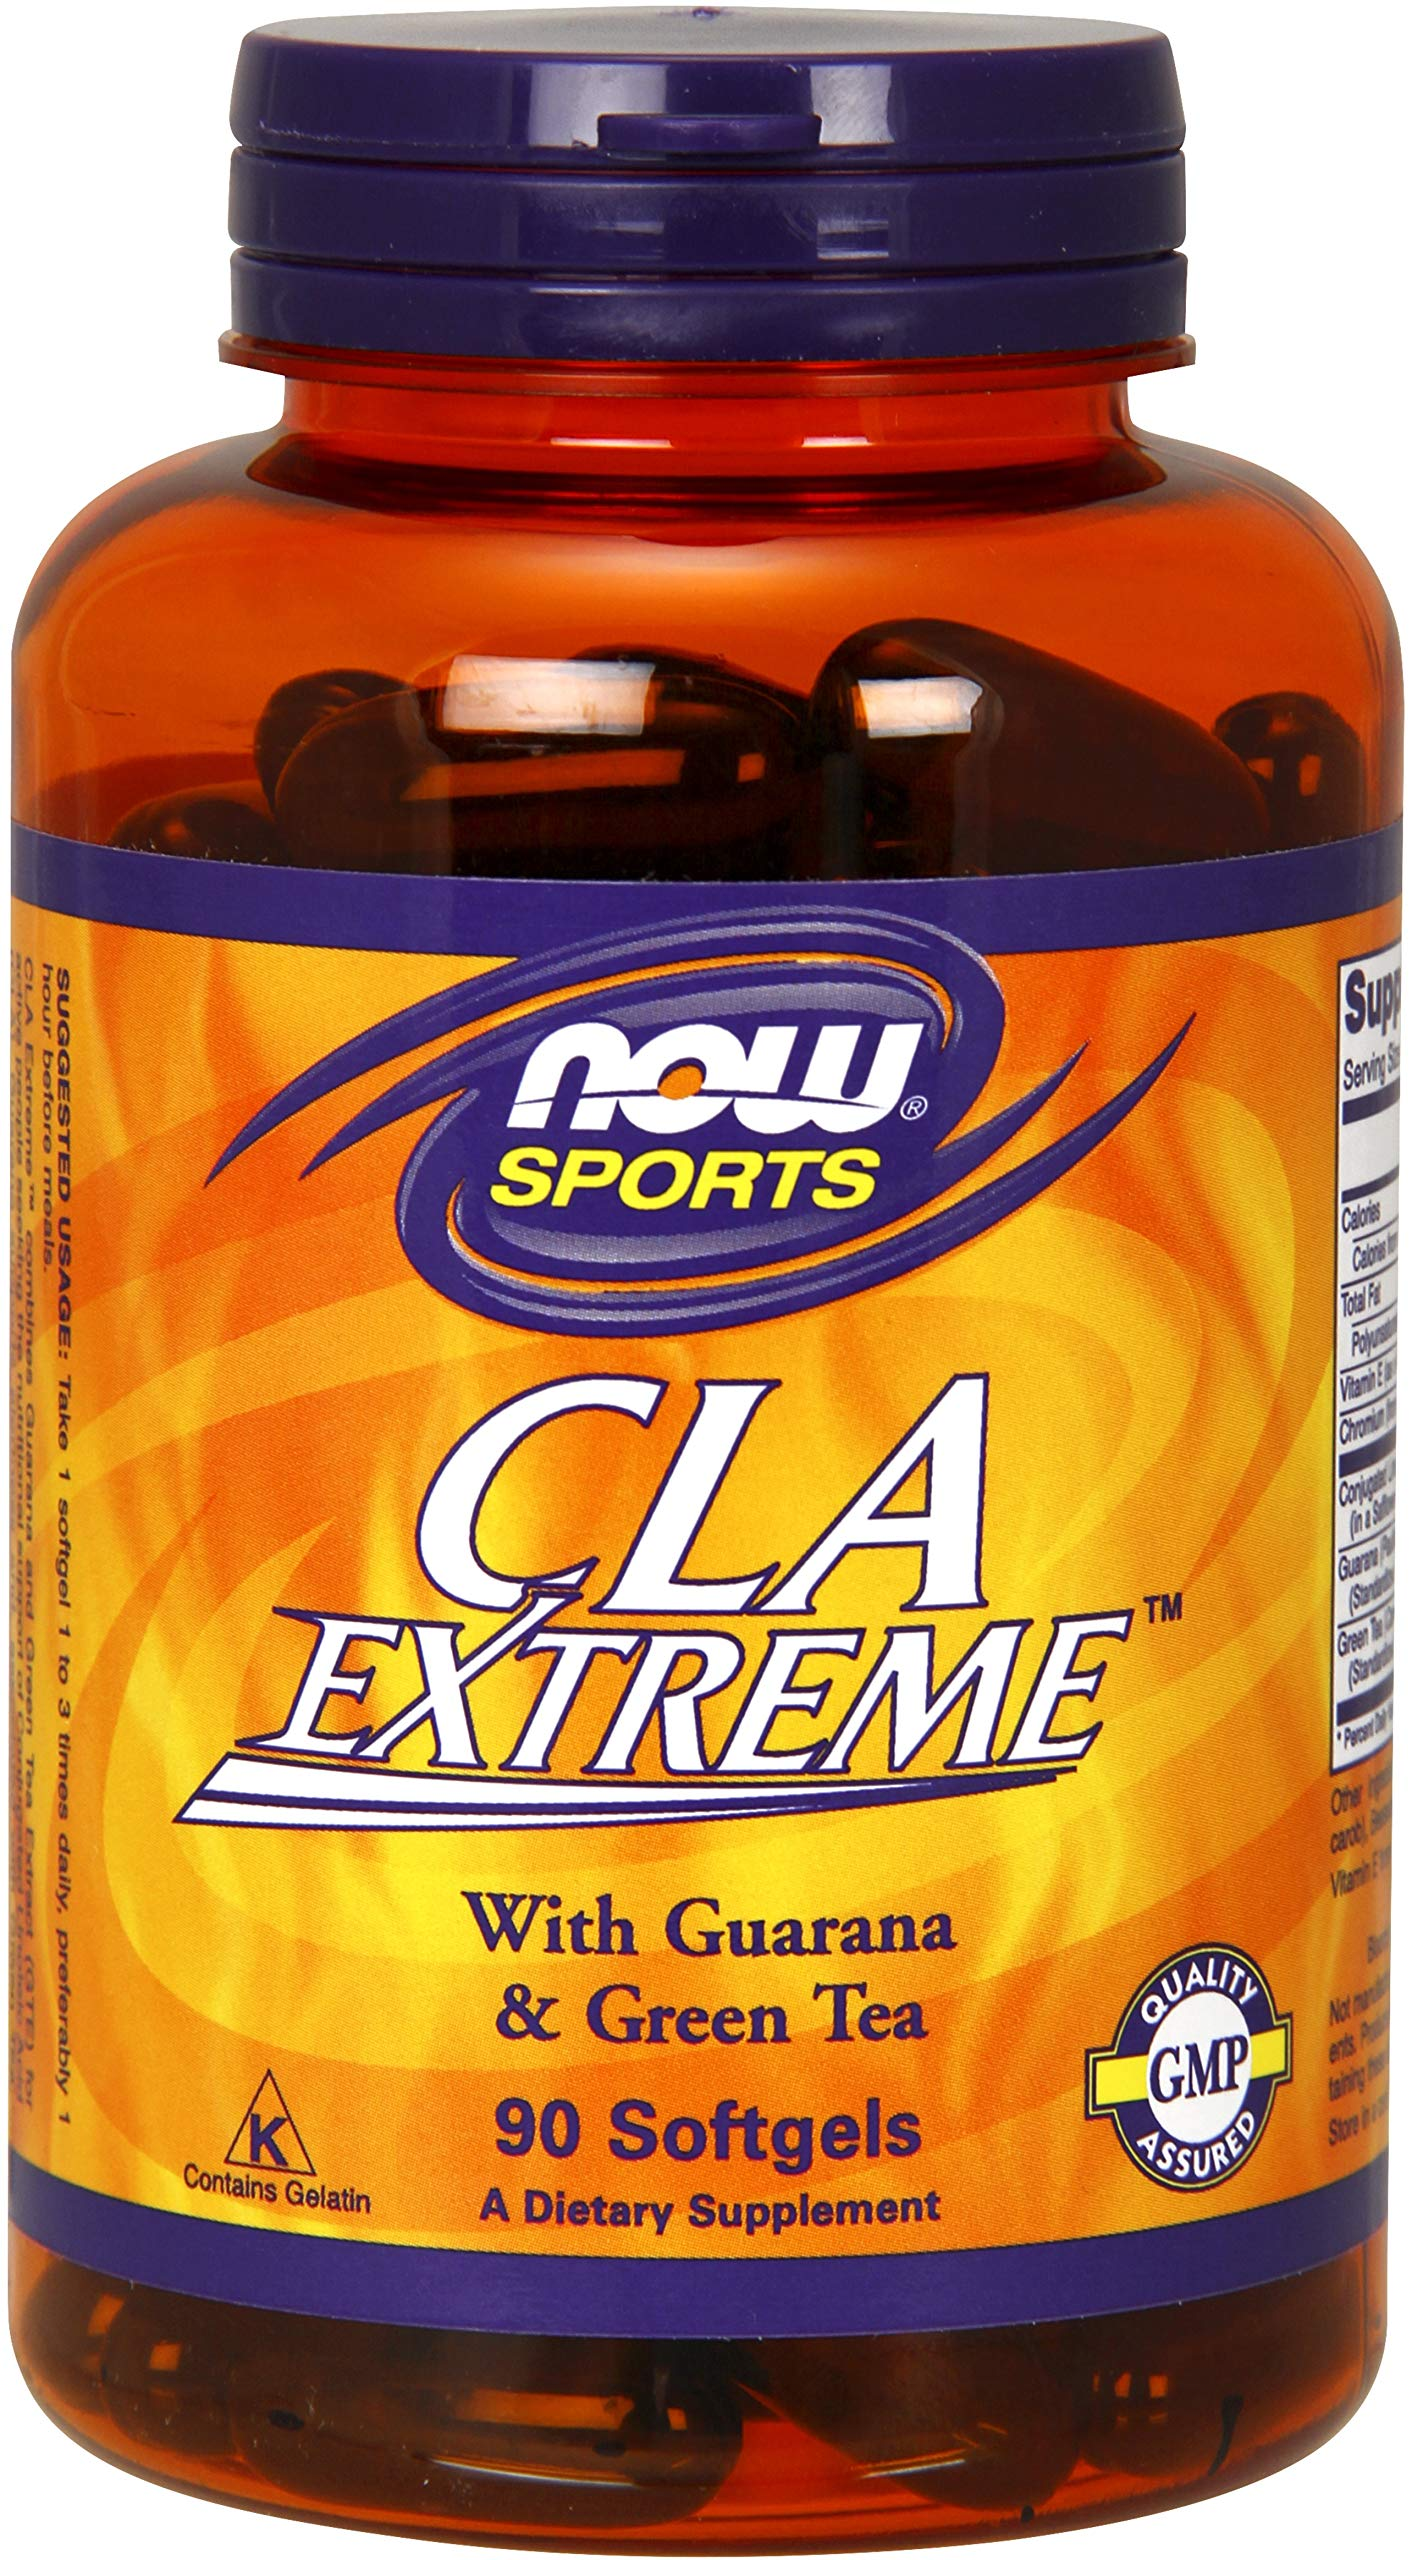 NOW® Sports CLA Extreme, 90 Softgels